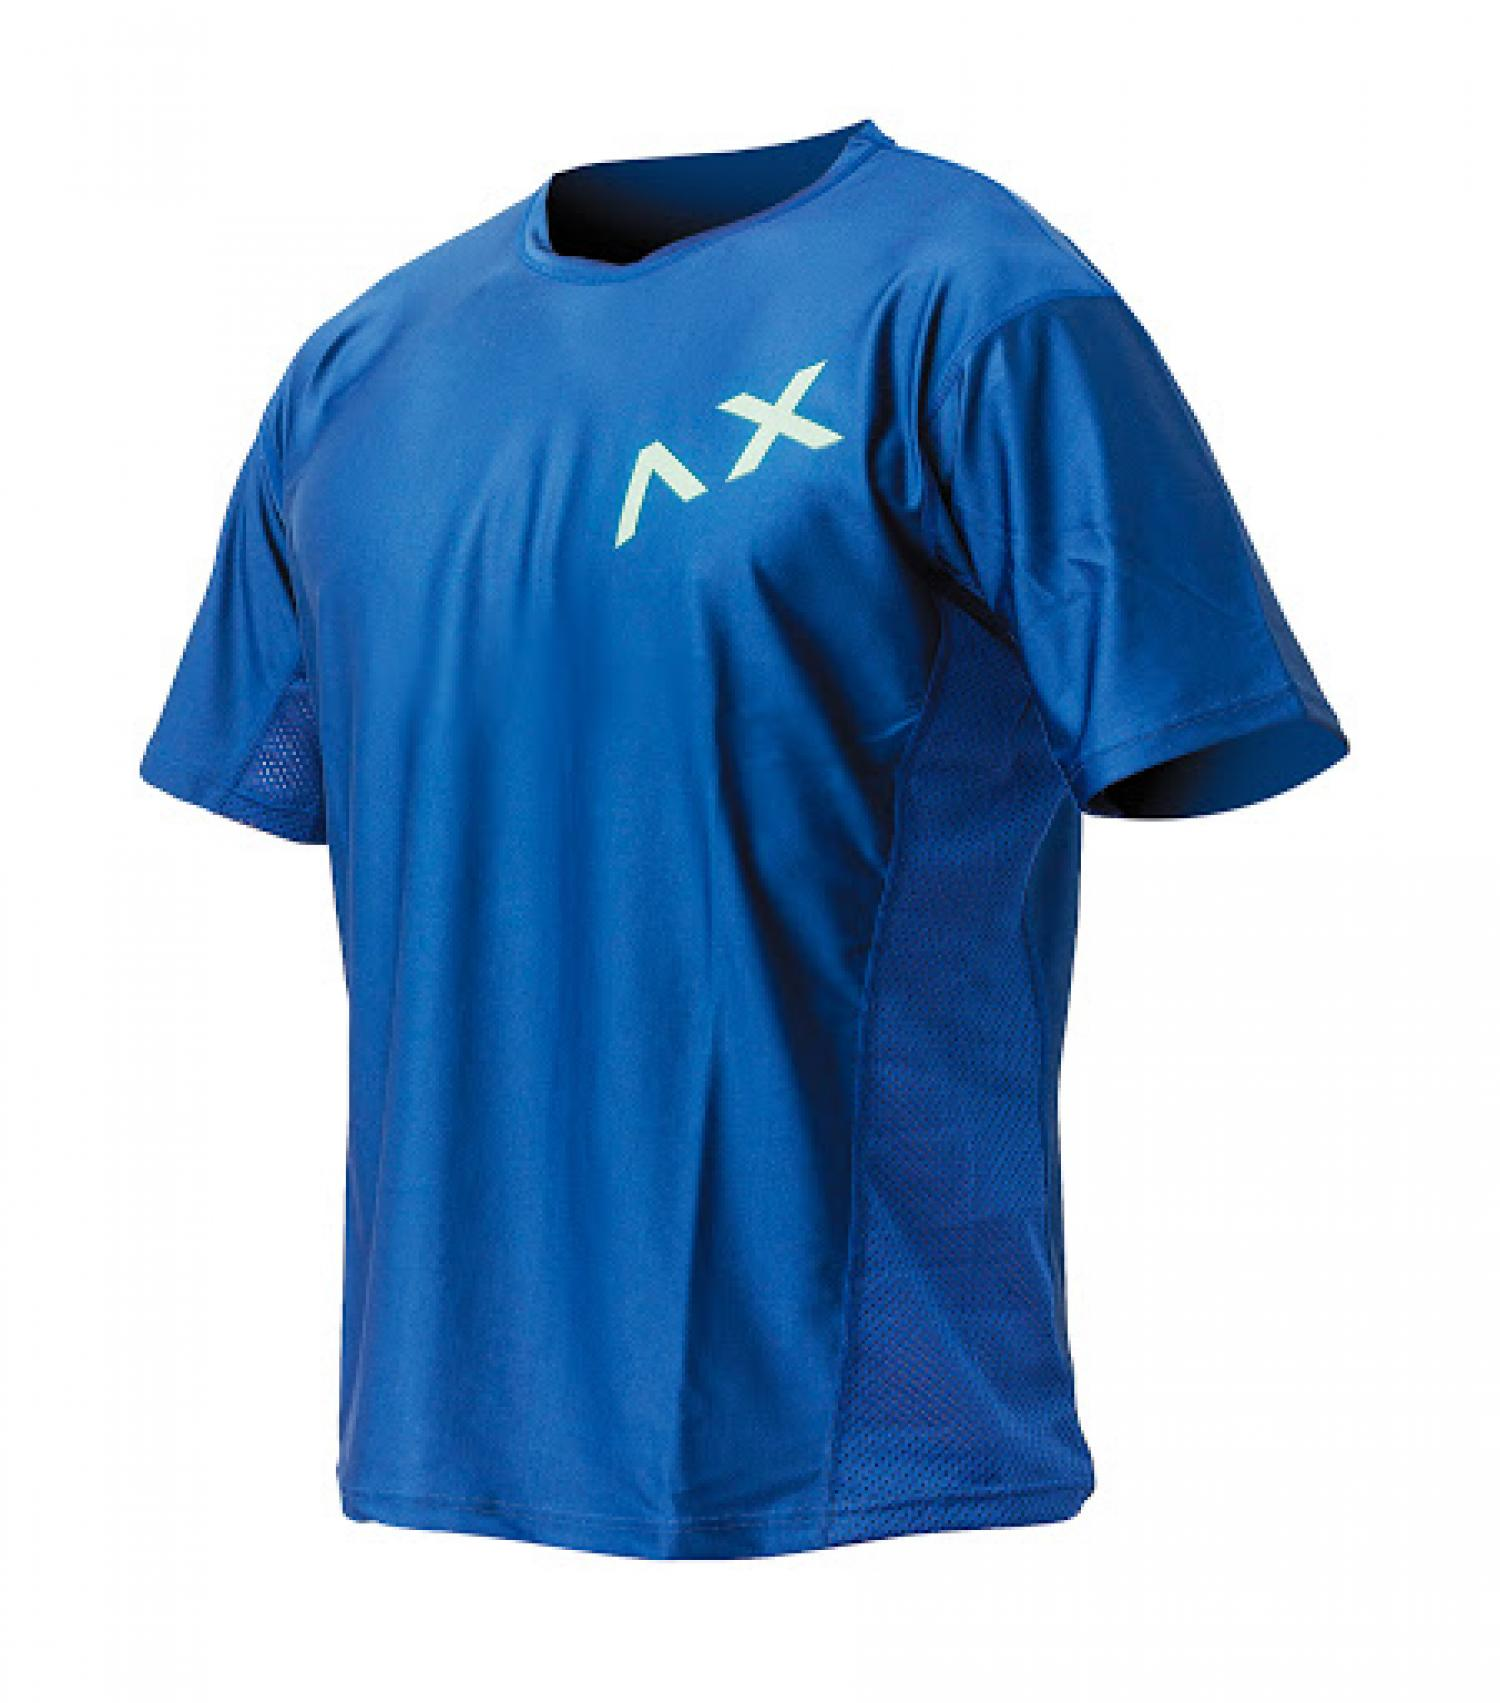 [AXXE] AIR-FAST RASH GUARD TEE NVY